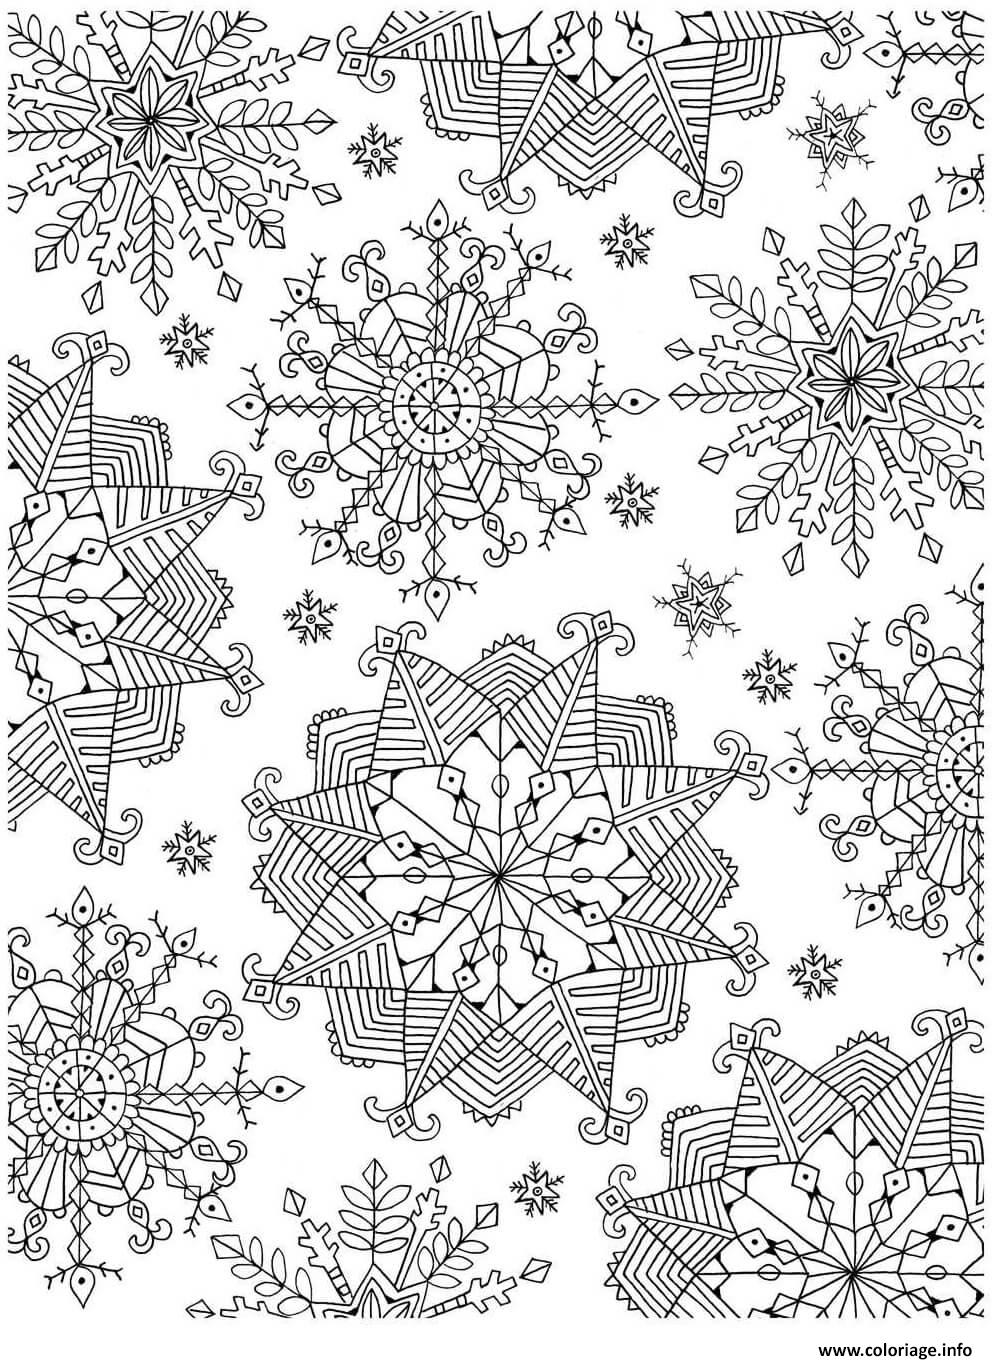 Coloriage Flocon De Neige Adulte Noel Zentangle Dessin